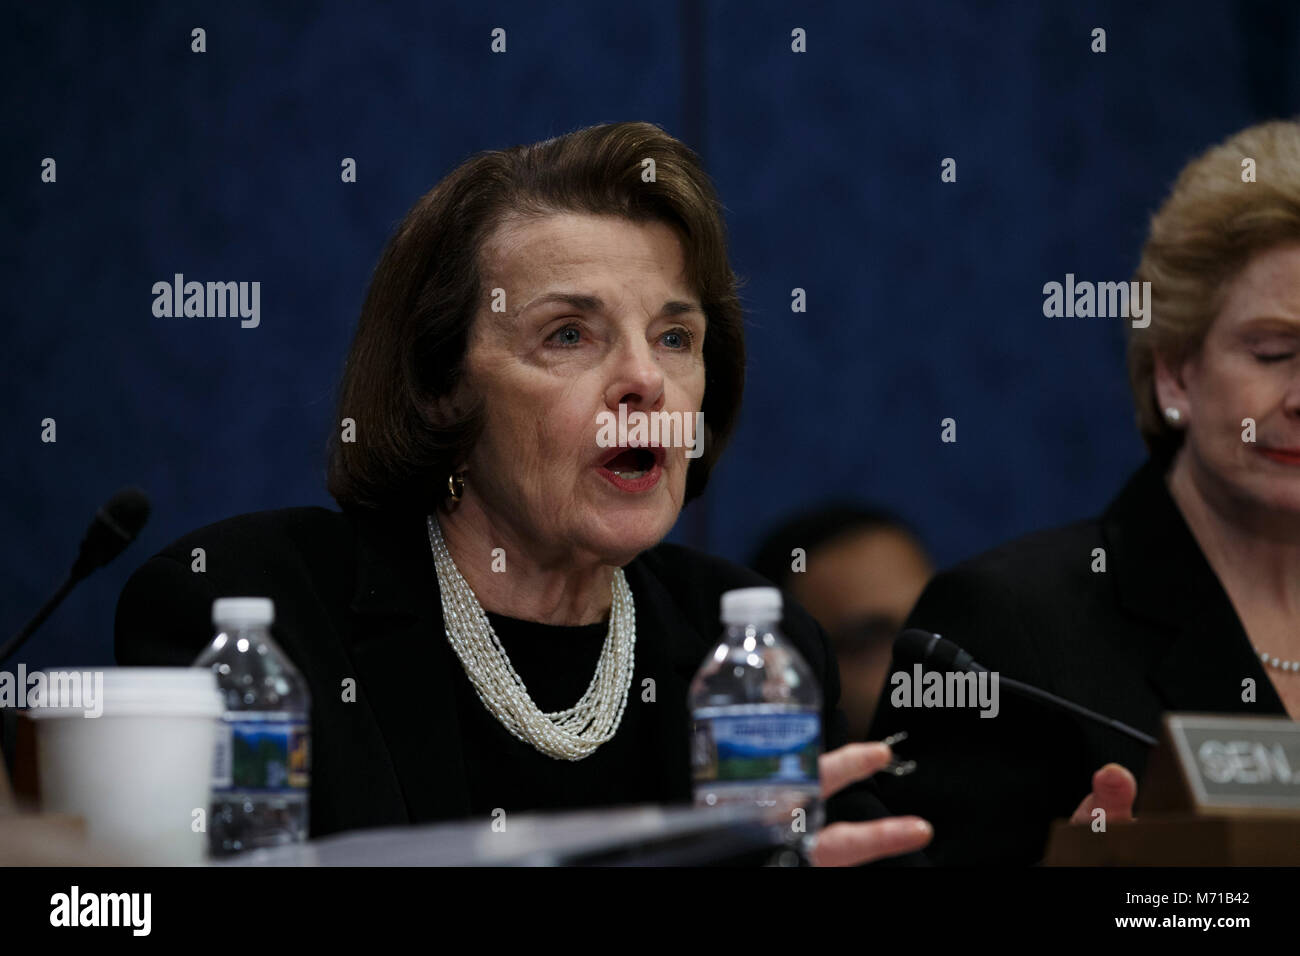 United States Senator Dianne Feinstein, Democrat of California, speaks to hearing witnesses during a hearing held - Stock Image